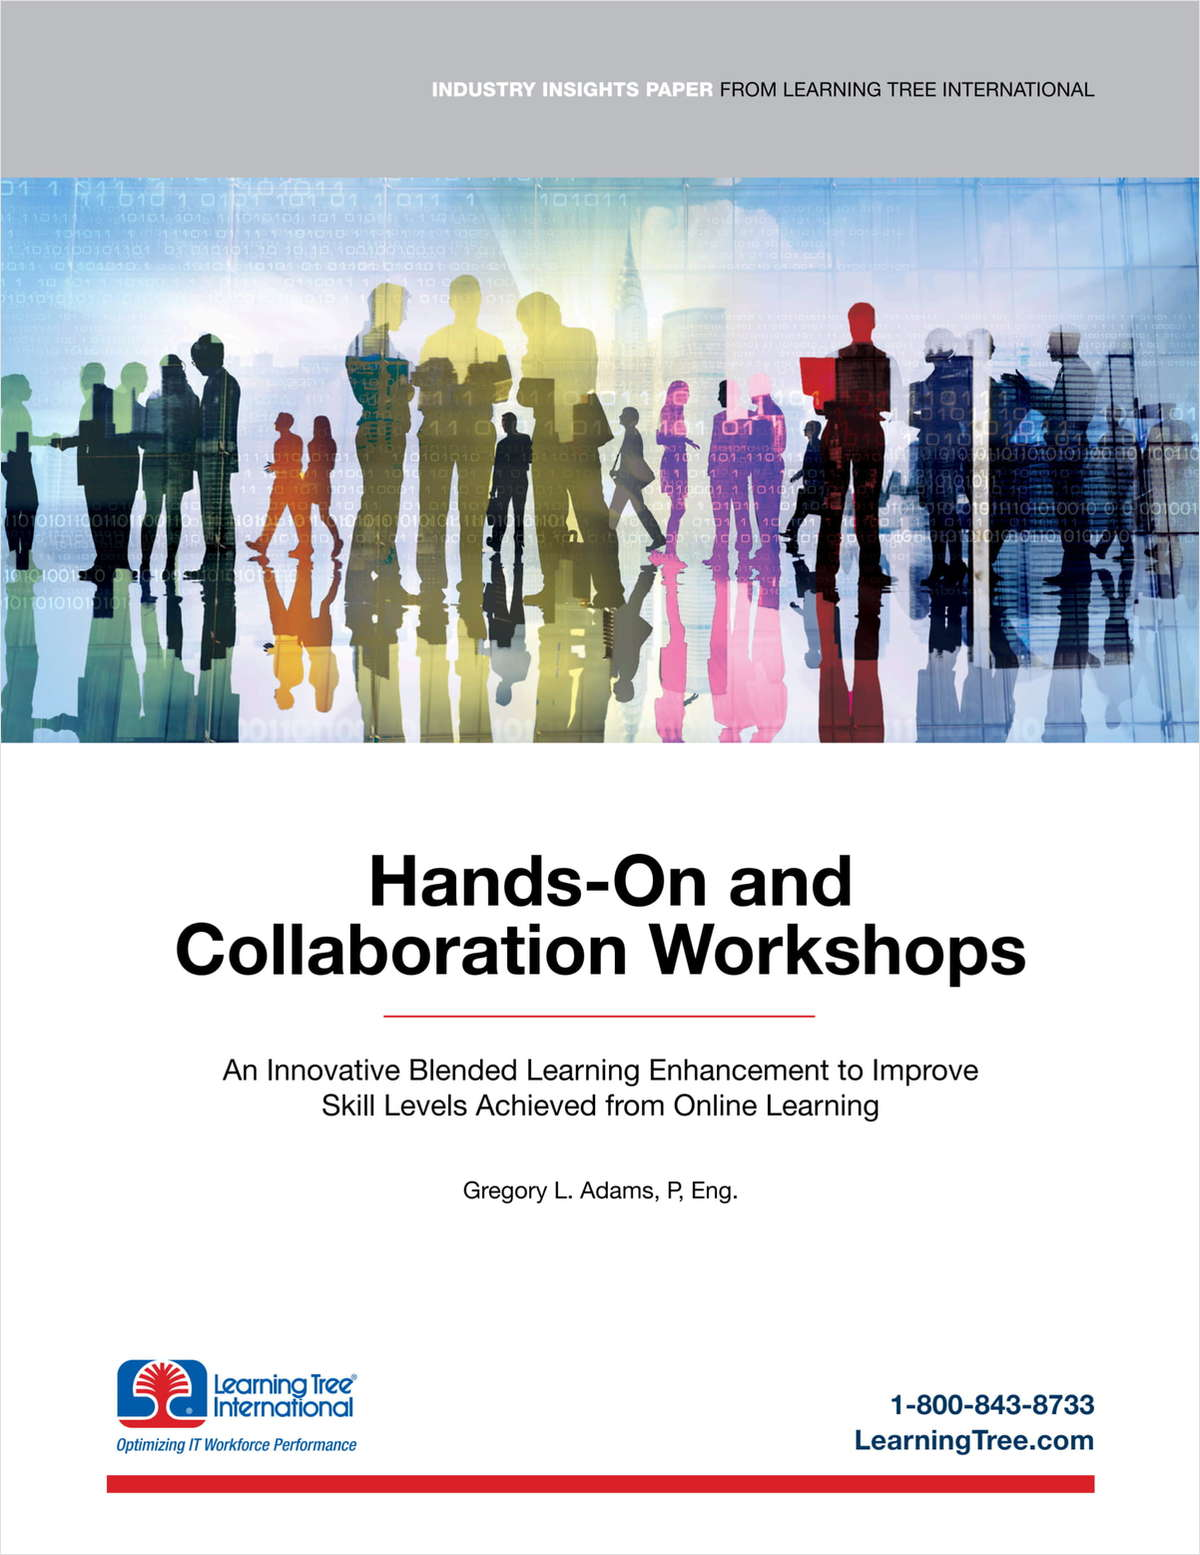 Improve Results from Online Learning: Combine with Collaboration Workshops